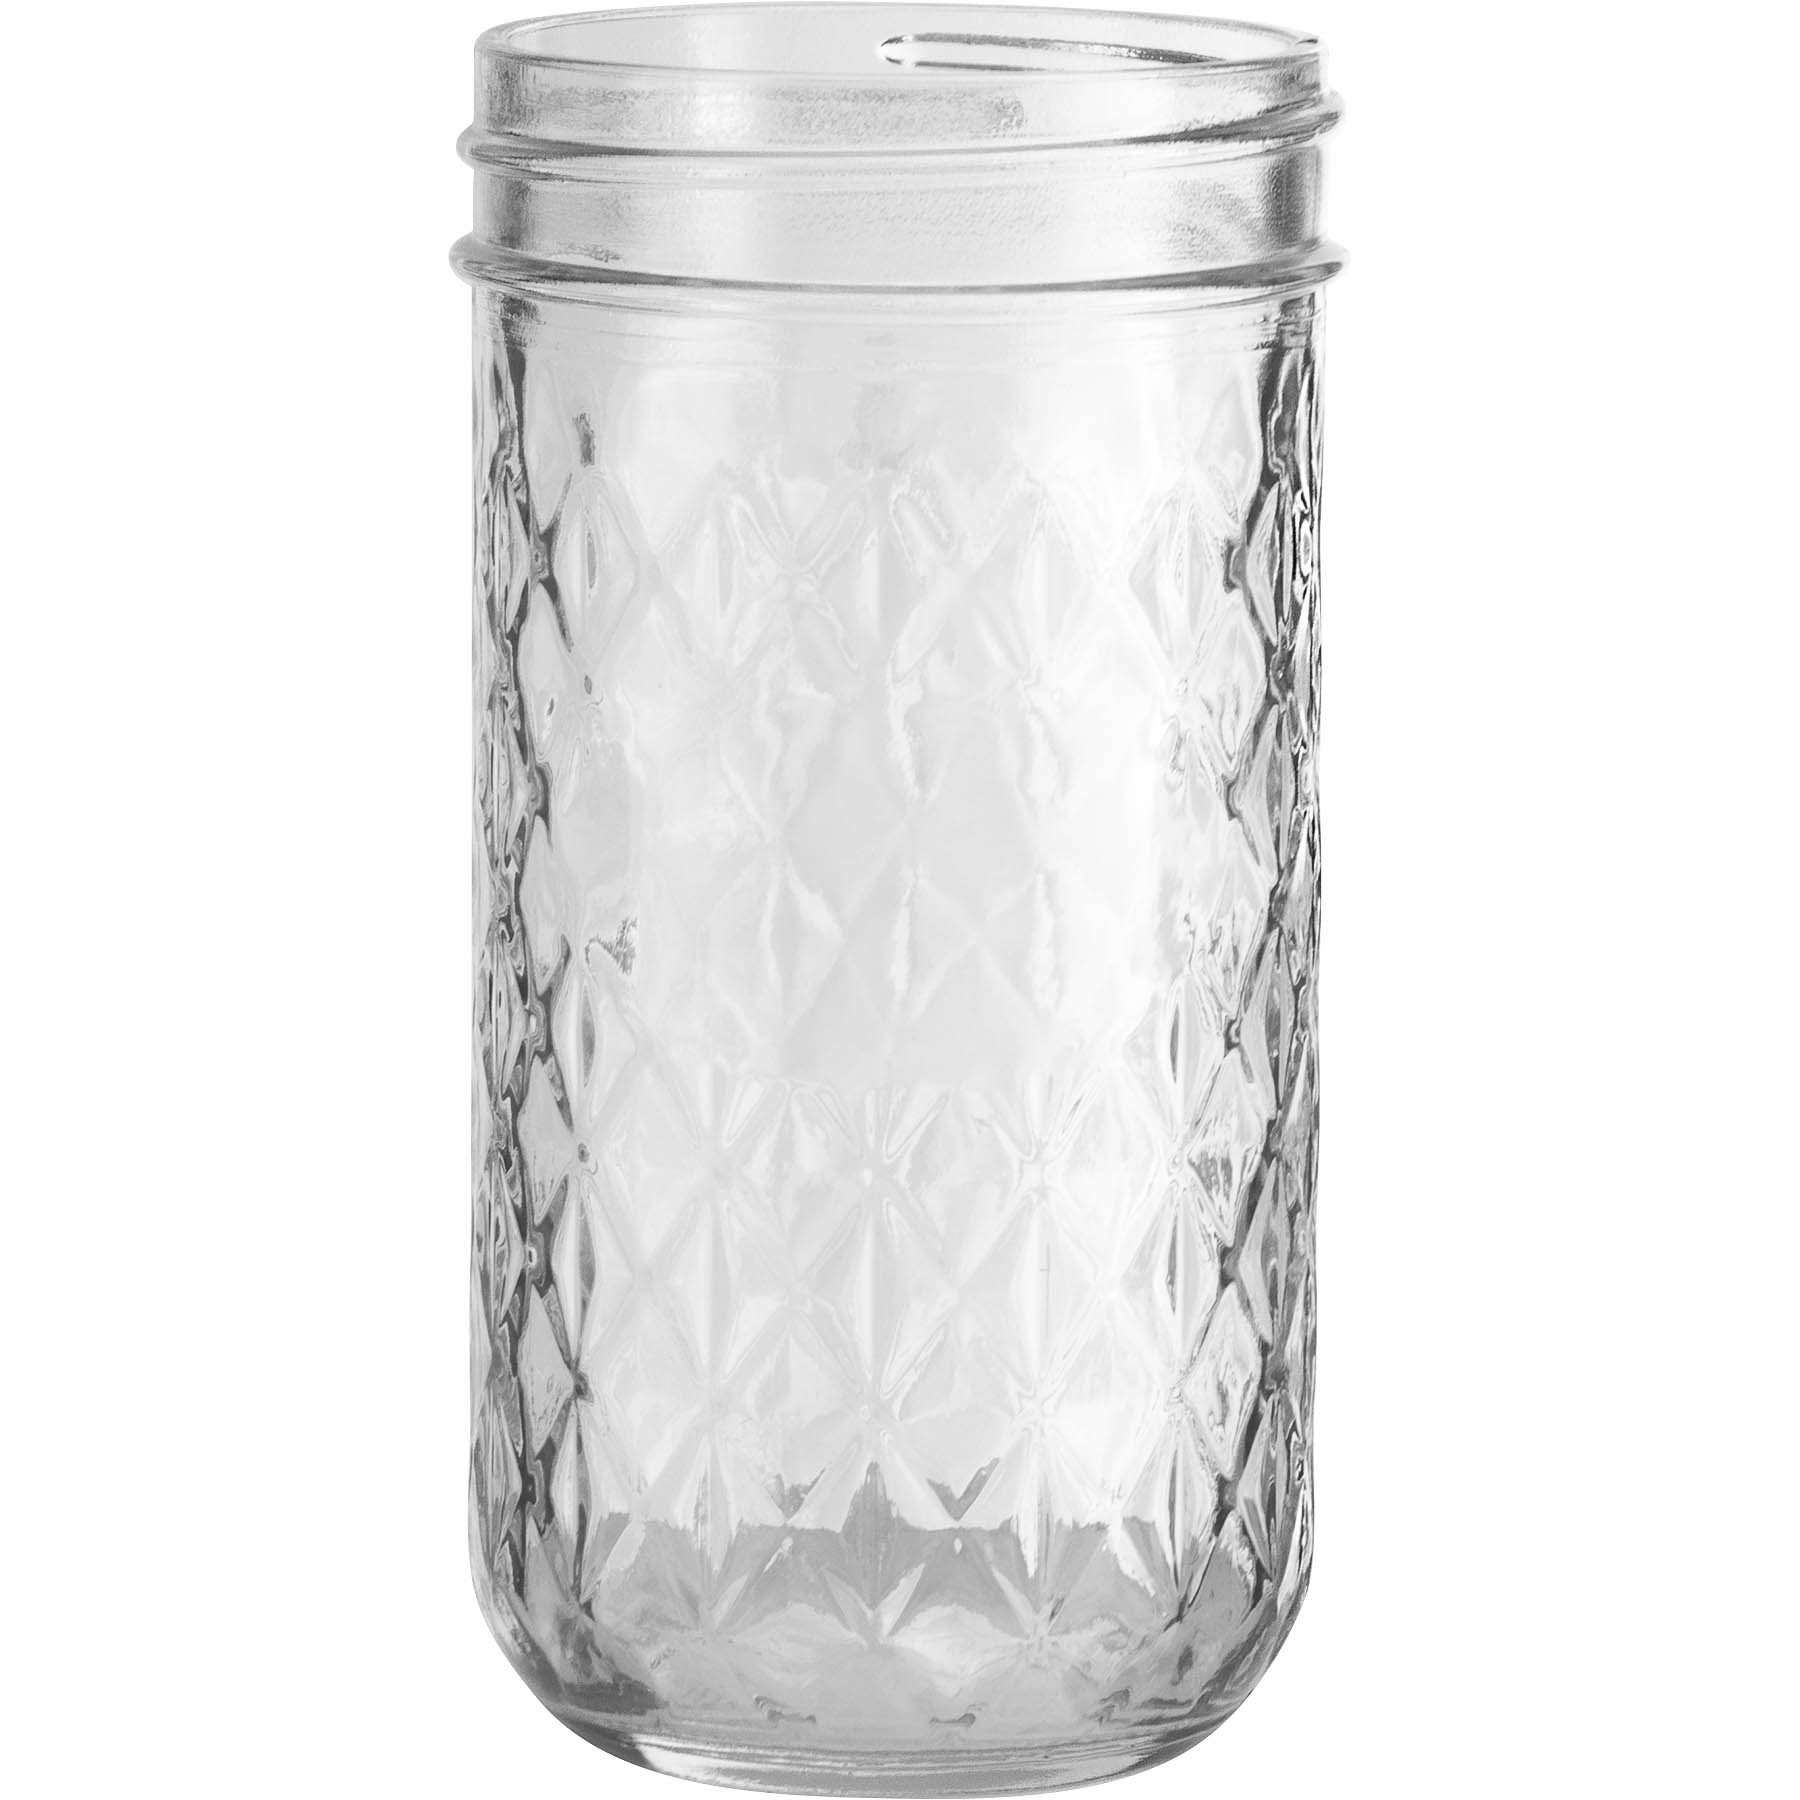 Ball 174 12 Oz Quilted Crystal Jelly Jars No Lid Bulk Packed